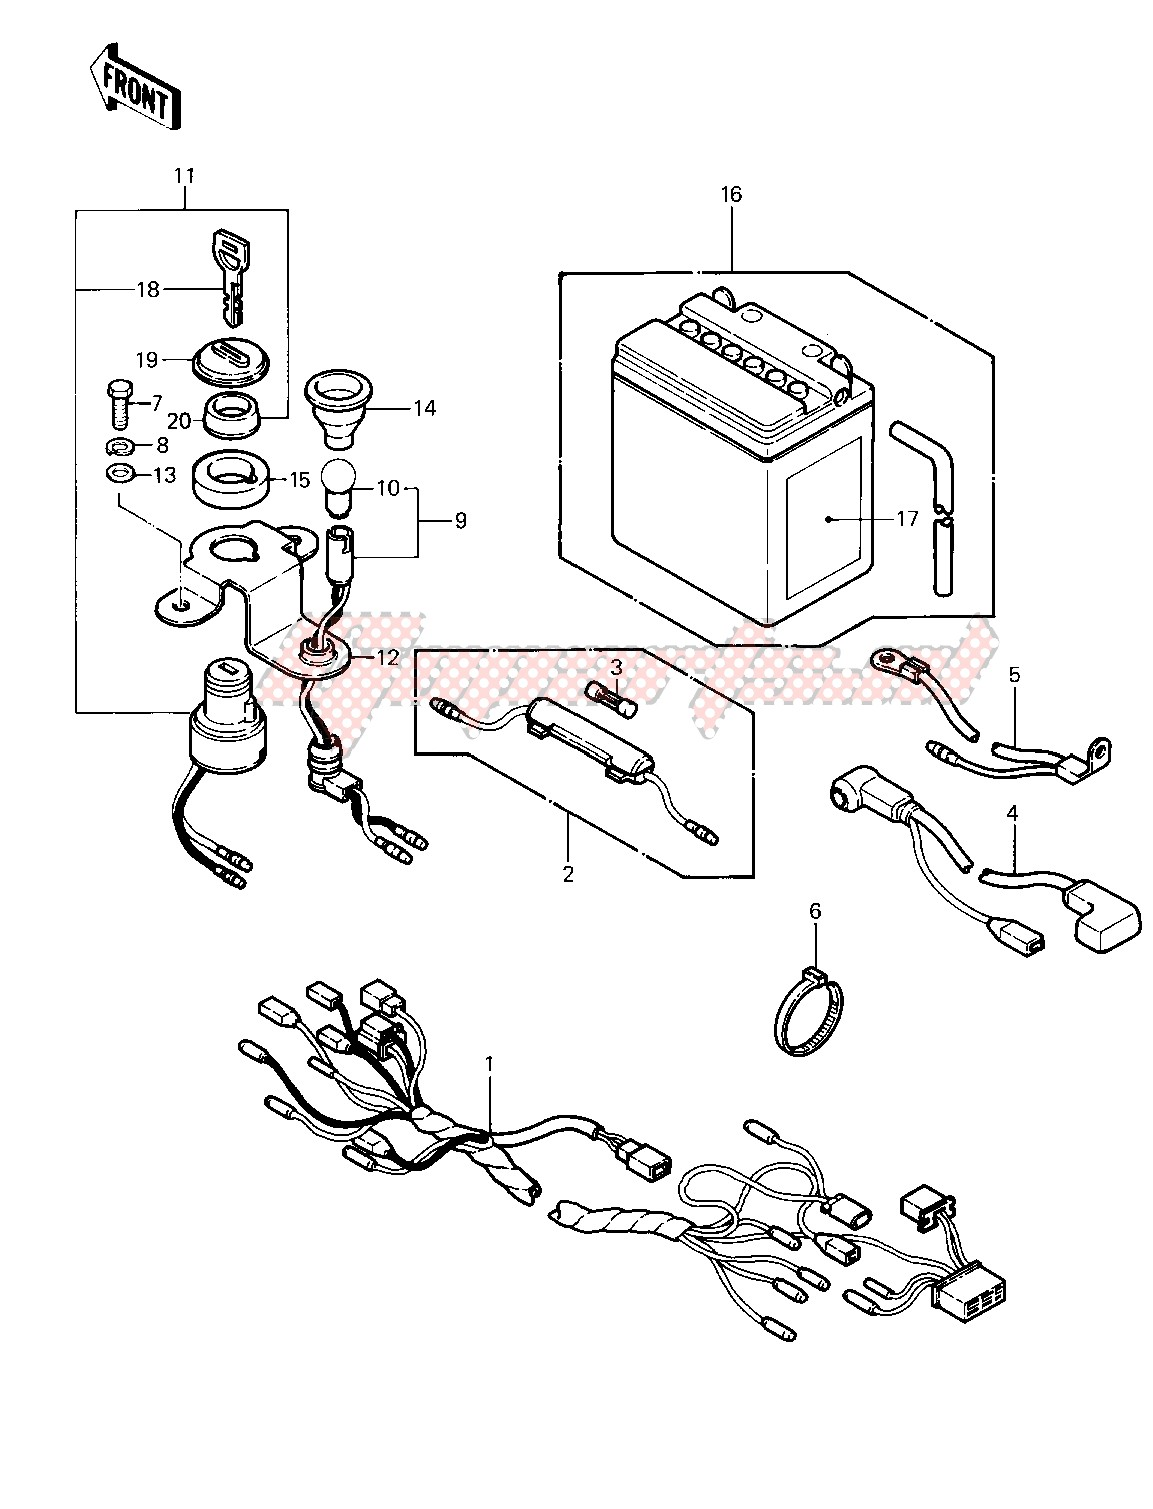 CHASSIS ELECTRICAL EQUIPMENT -- 83 KLT200-A4_A4A- - image